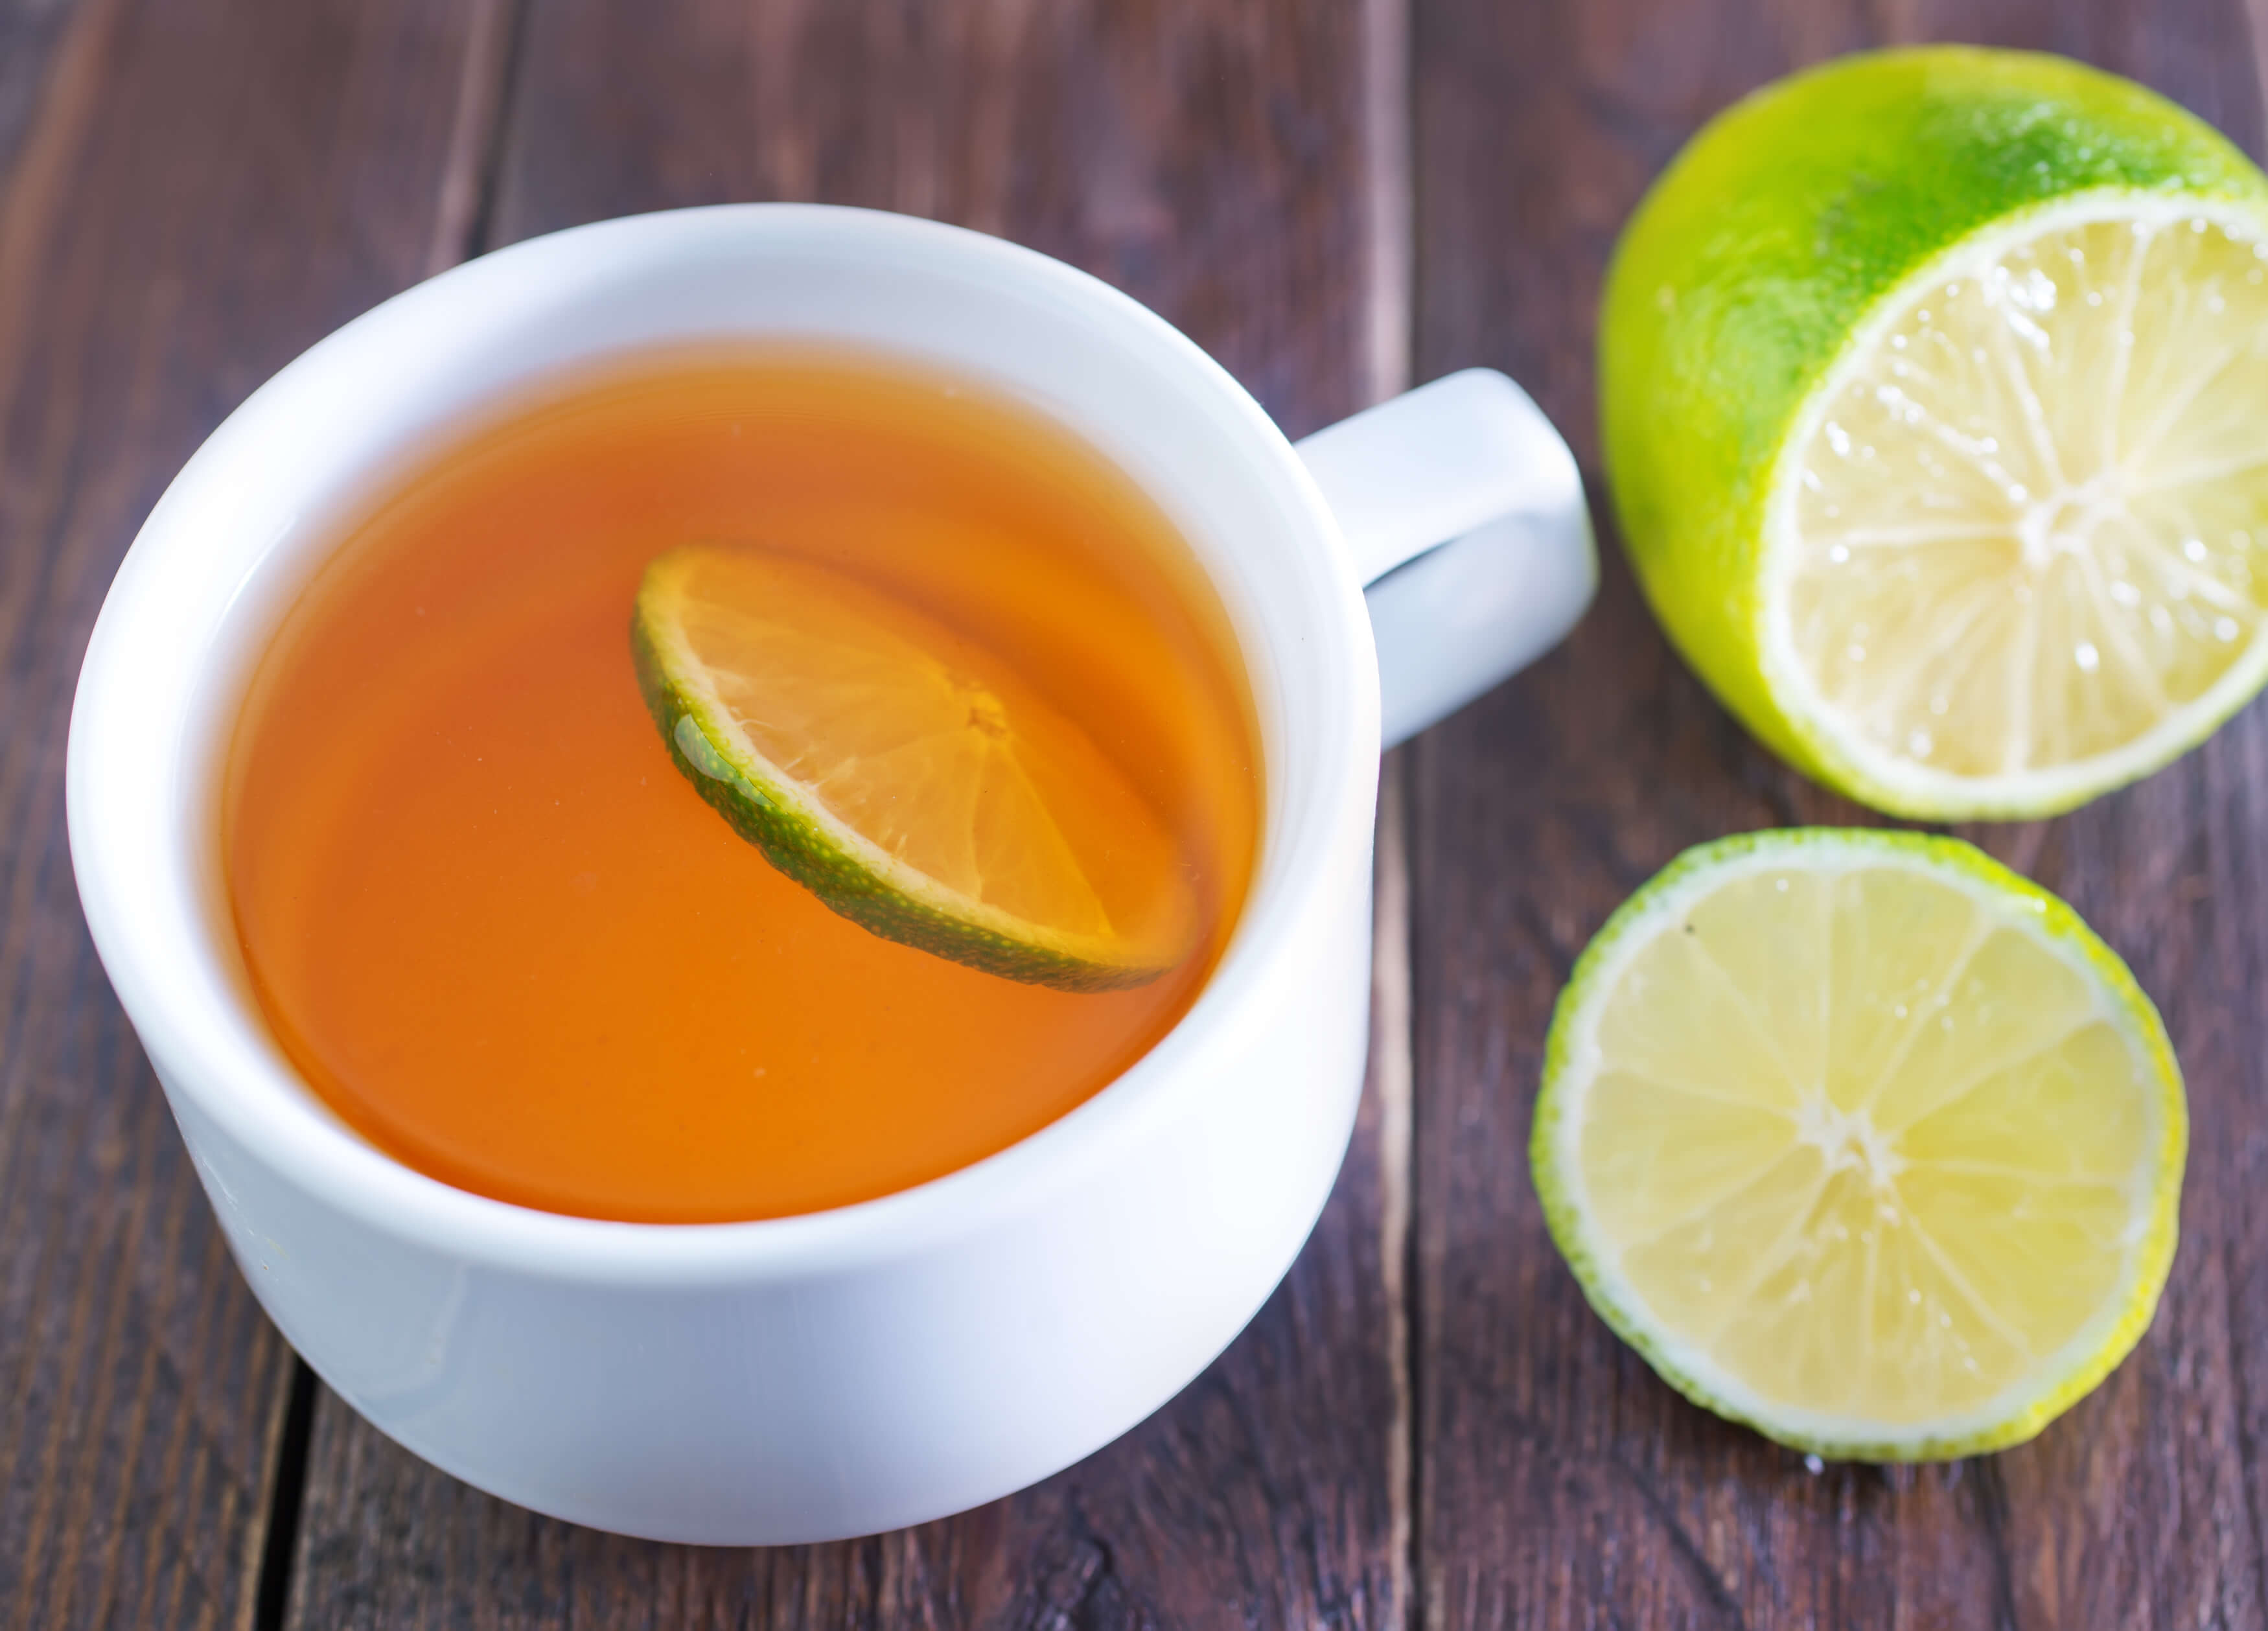 Drinks to boost immune system